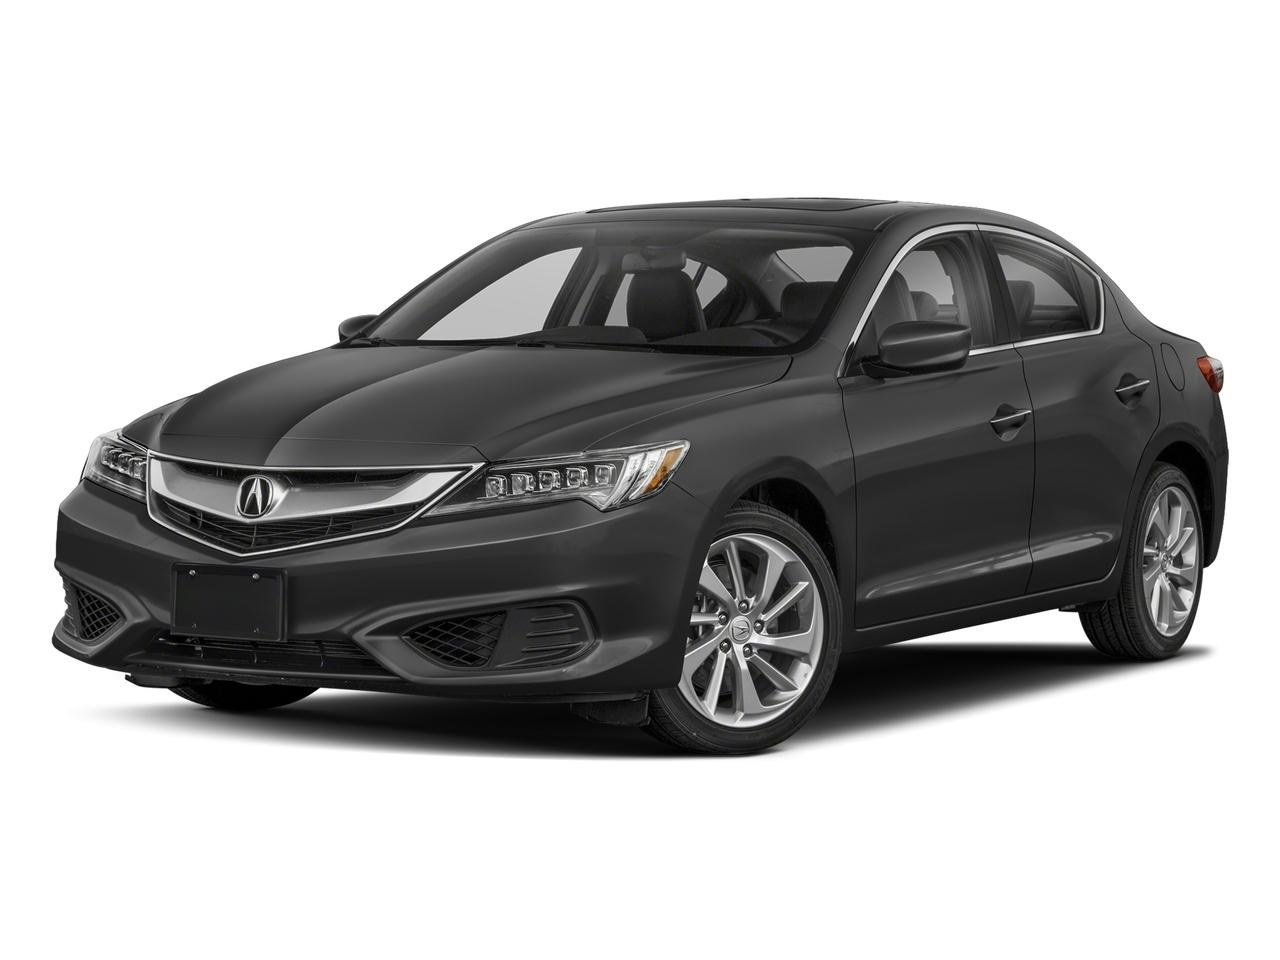 2018 Acura ILX Vehicle Photo in Chapel Hill, NC 27514